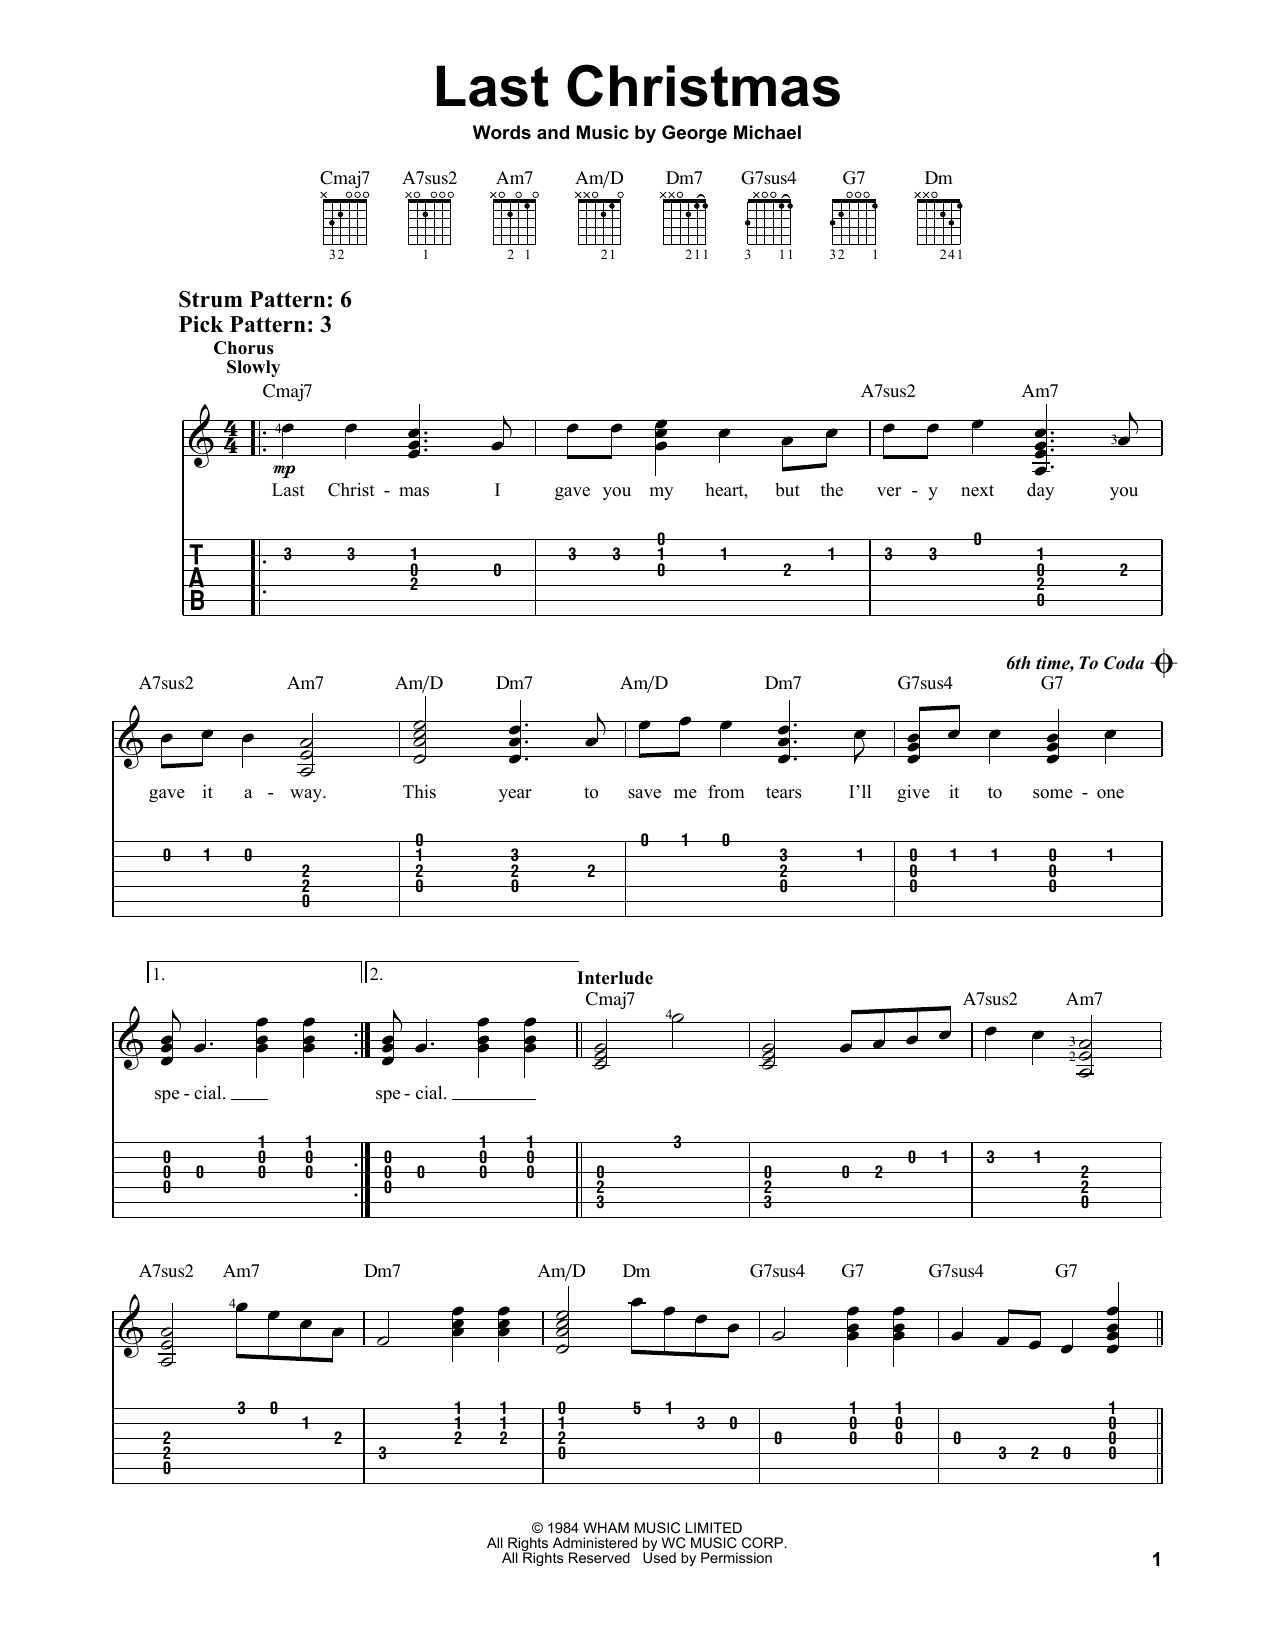 Harmonica harmonica tabs last christmas : Last Christmas Sheet Music Download - last christmas sheet music ...